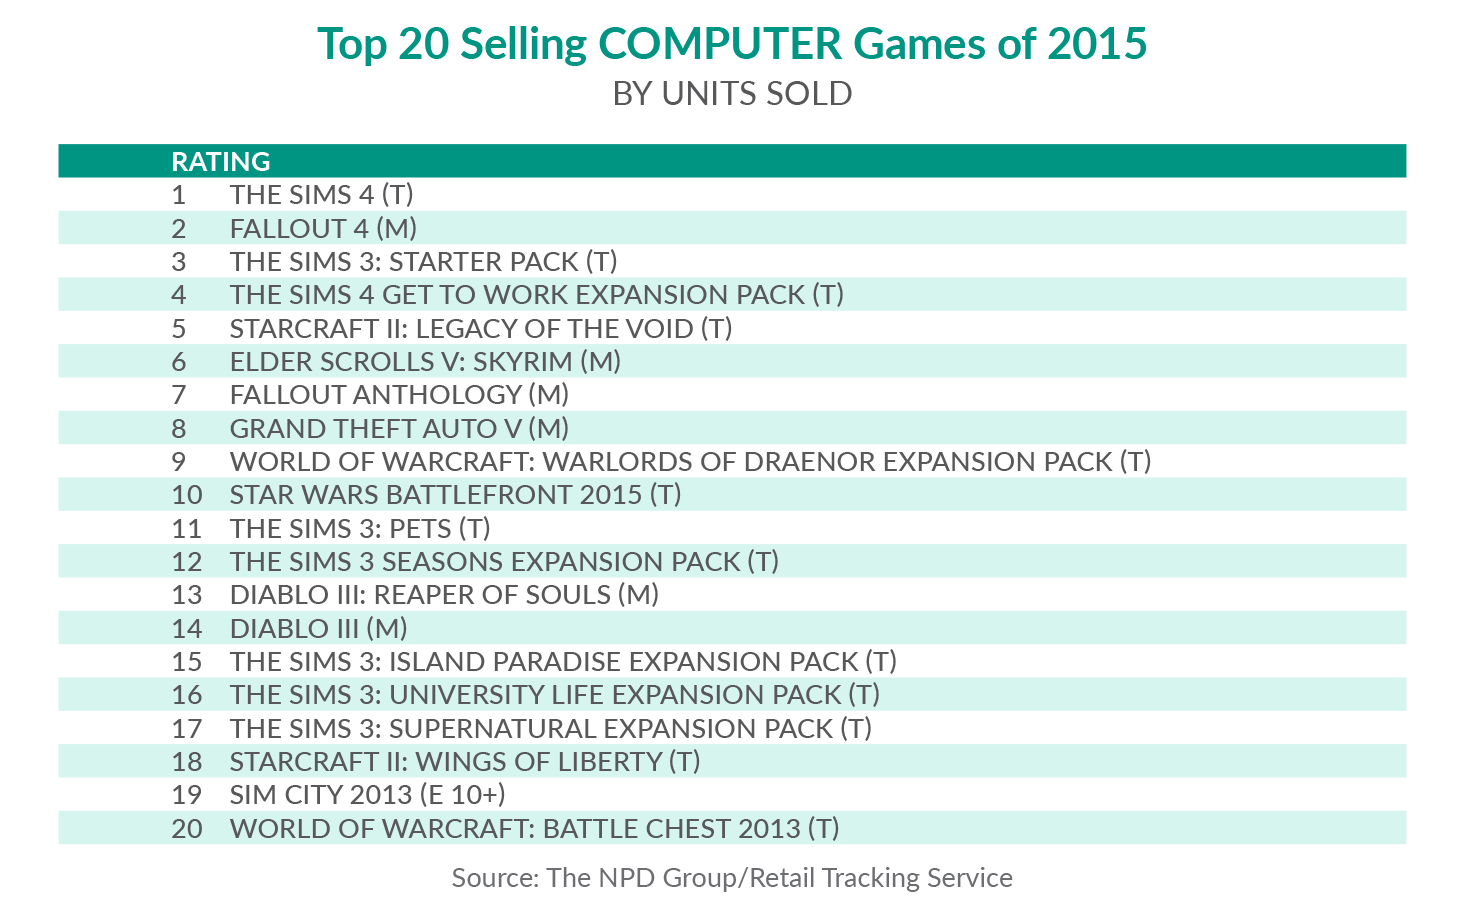 Sims 4 Top PC Game 2015